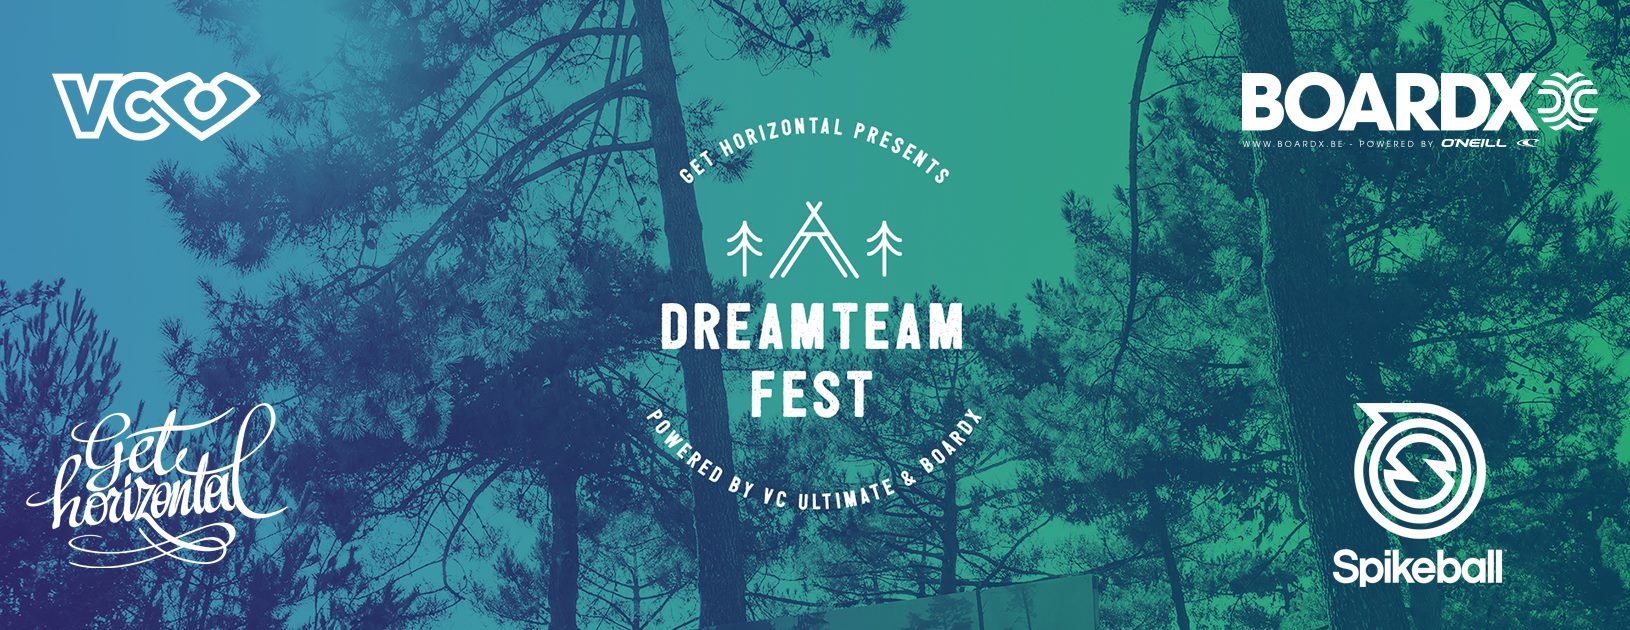 DREAMTEAM FEST: A TRULY UNIQUE EXPERIENCE FOR ULTIMATE LOVERS